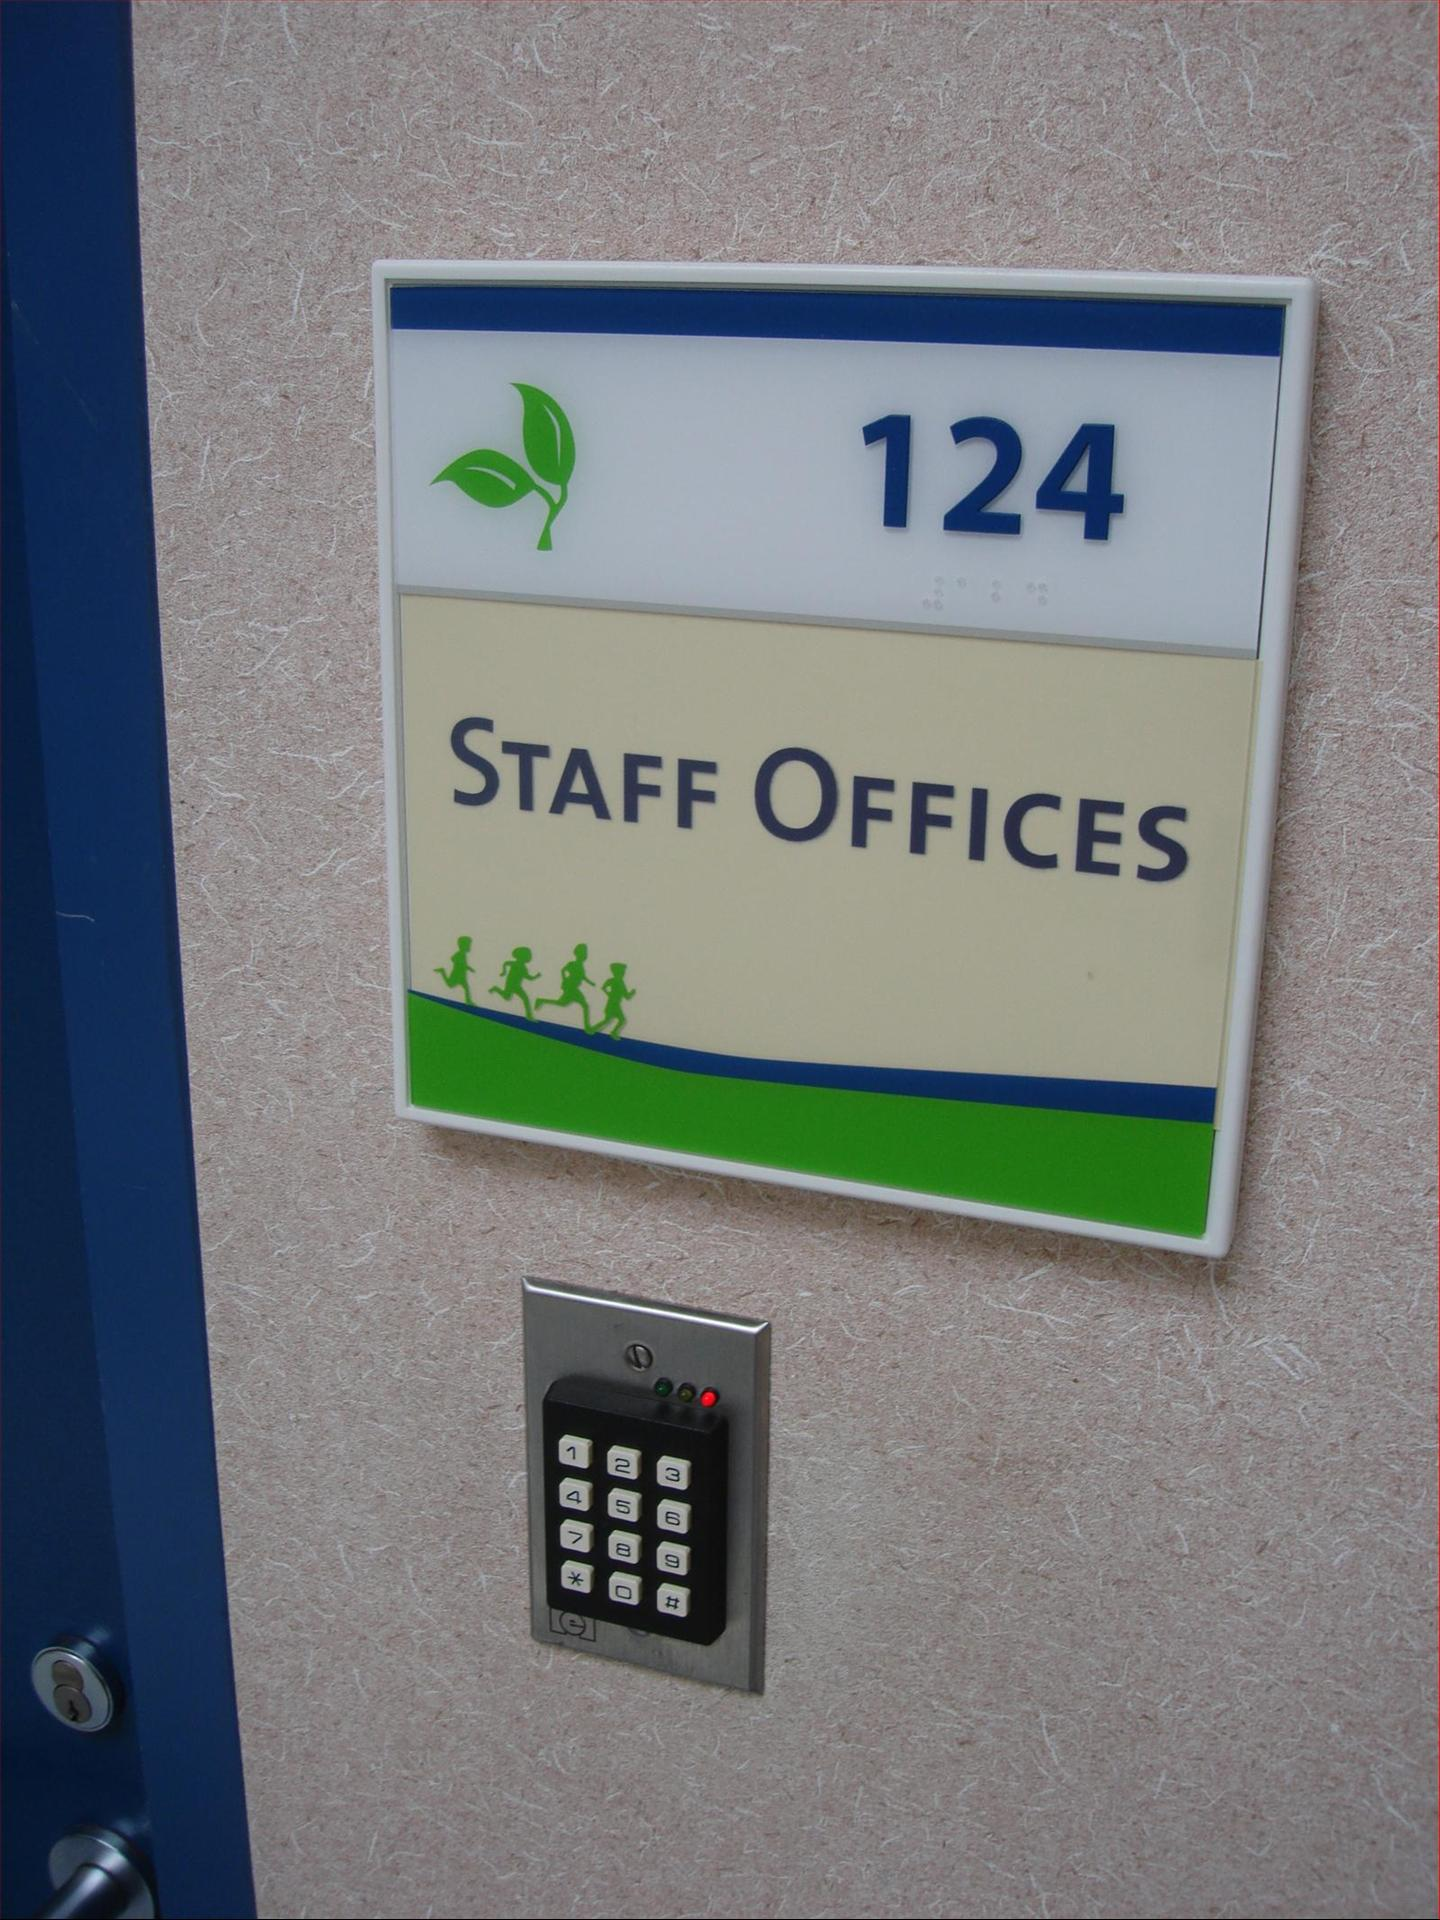 Staff Offices Environmental Sign